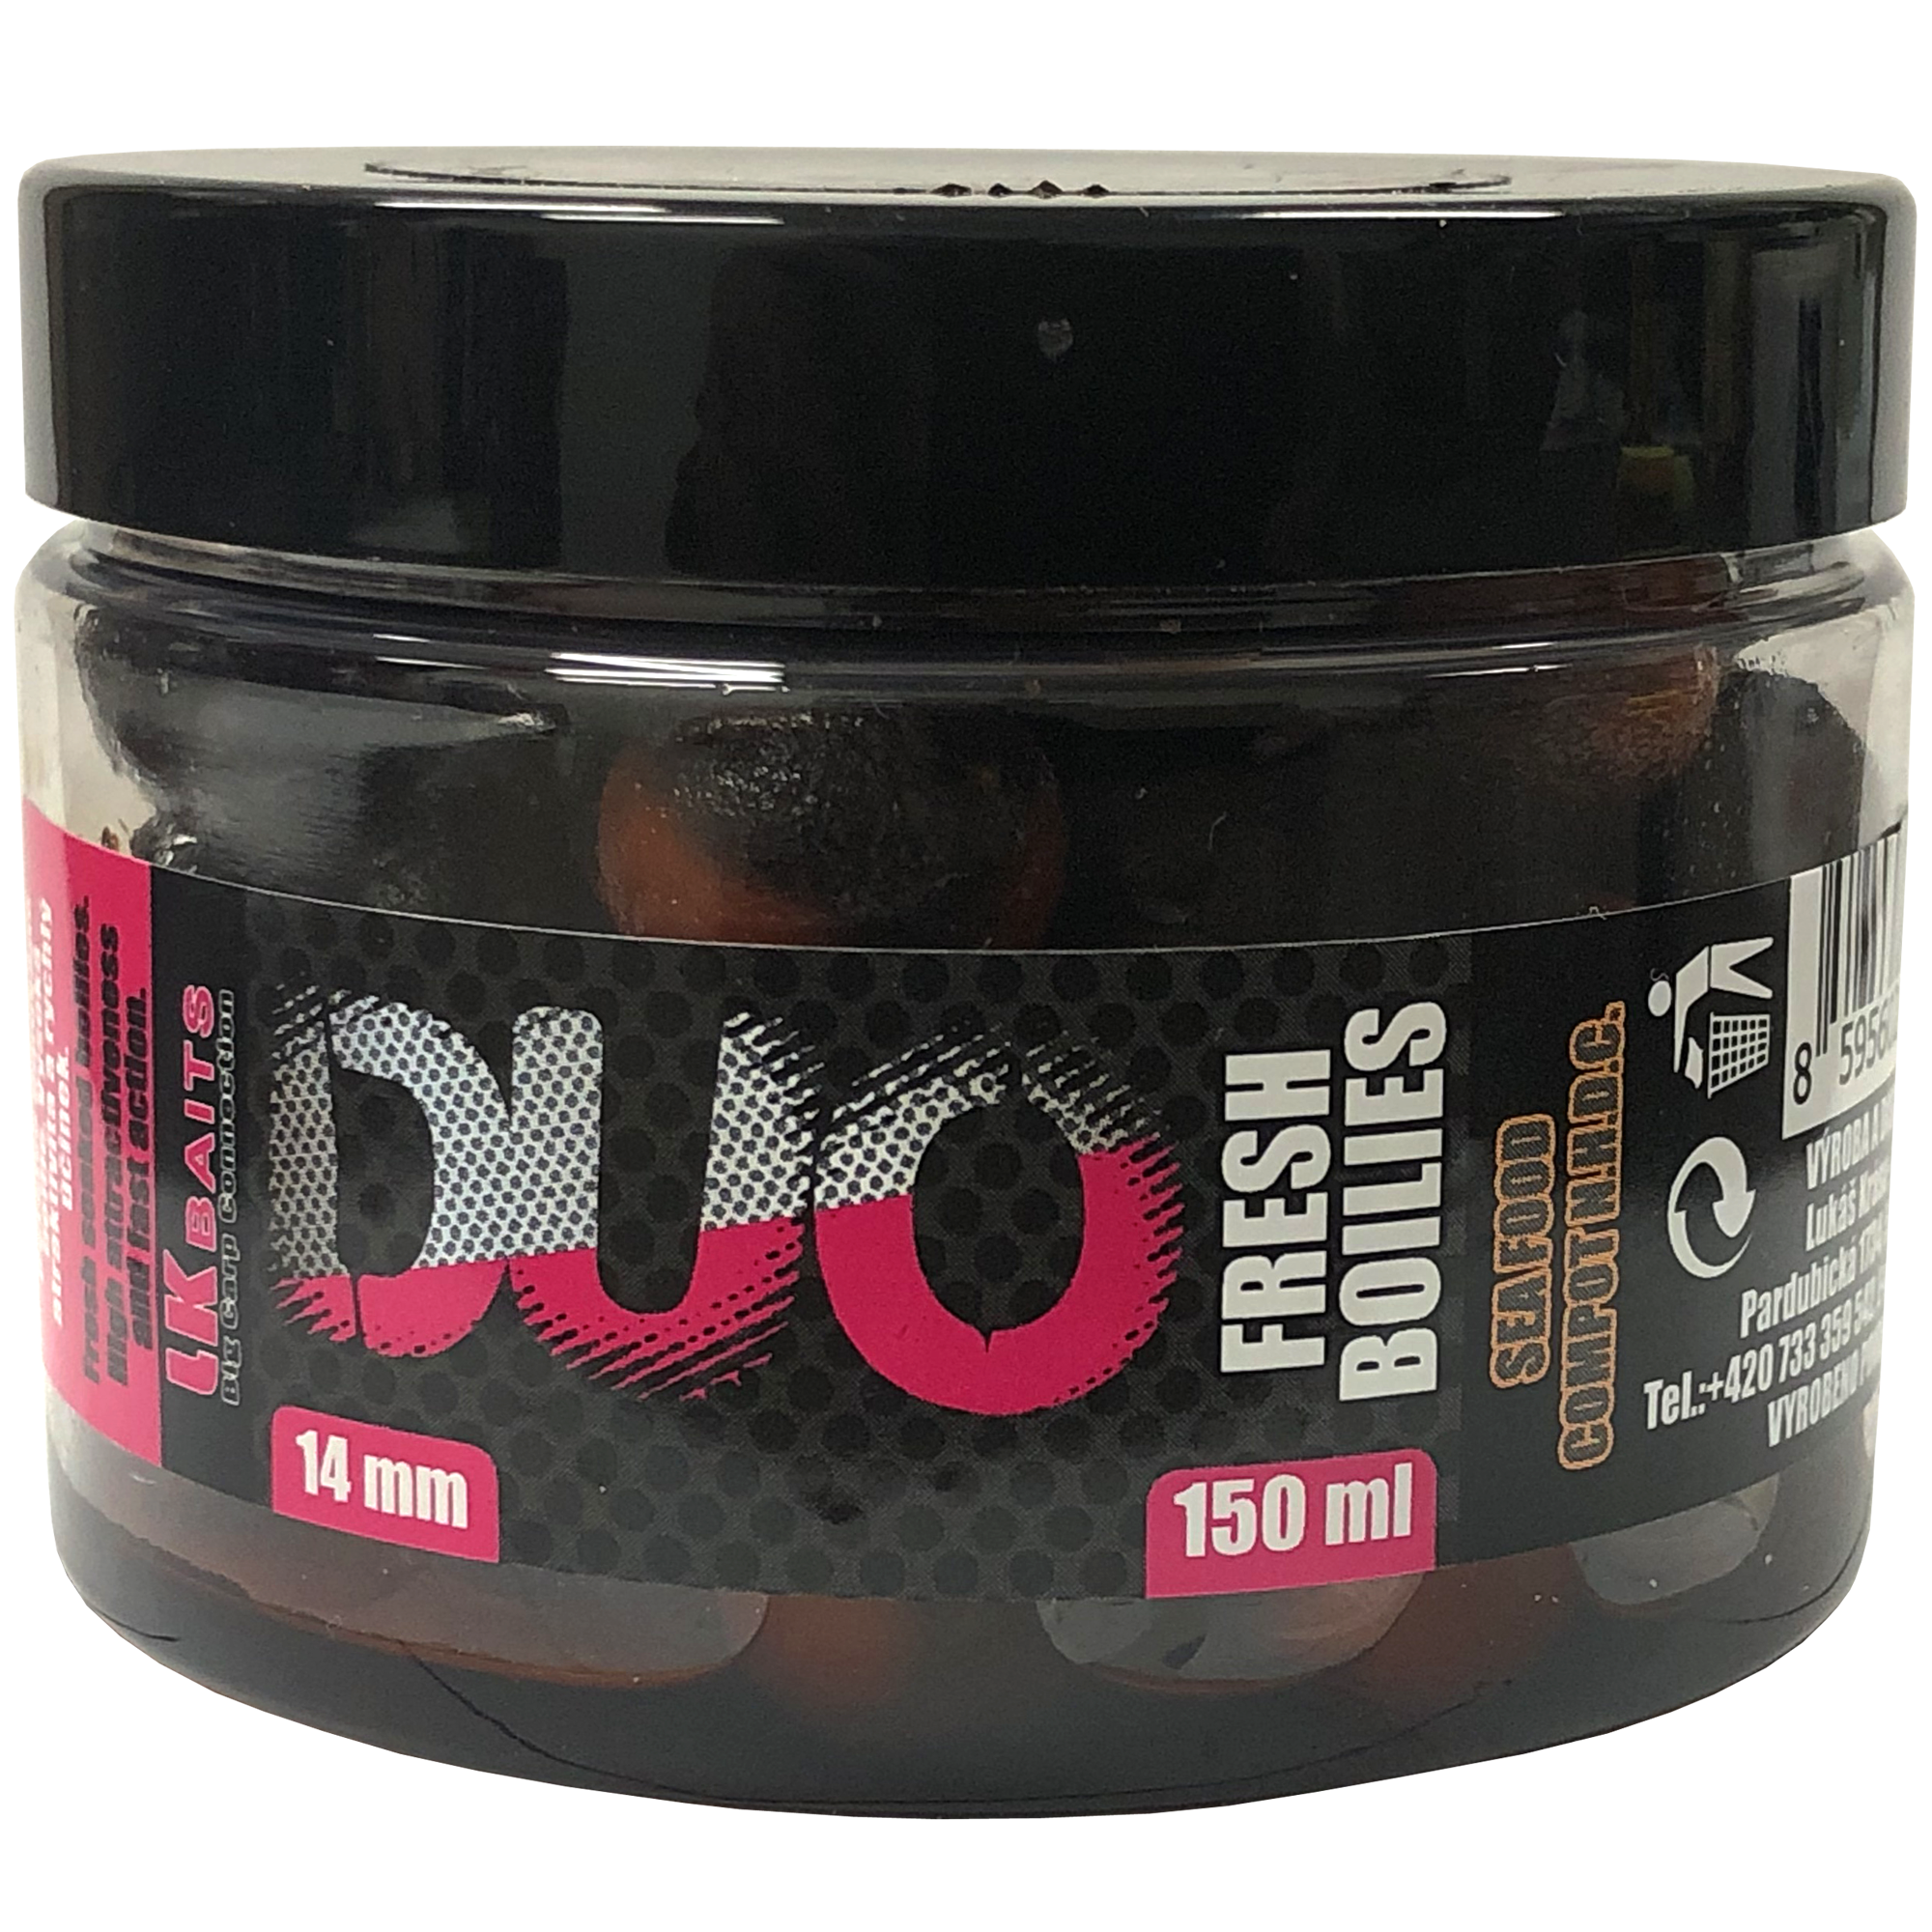 LK Baits DUO X-Tra Fresh Boilies Sea Food/Compot NHDC 14mm 150ml